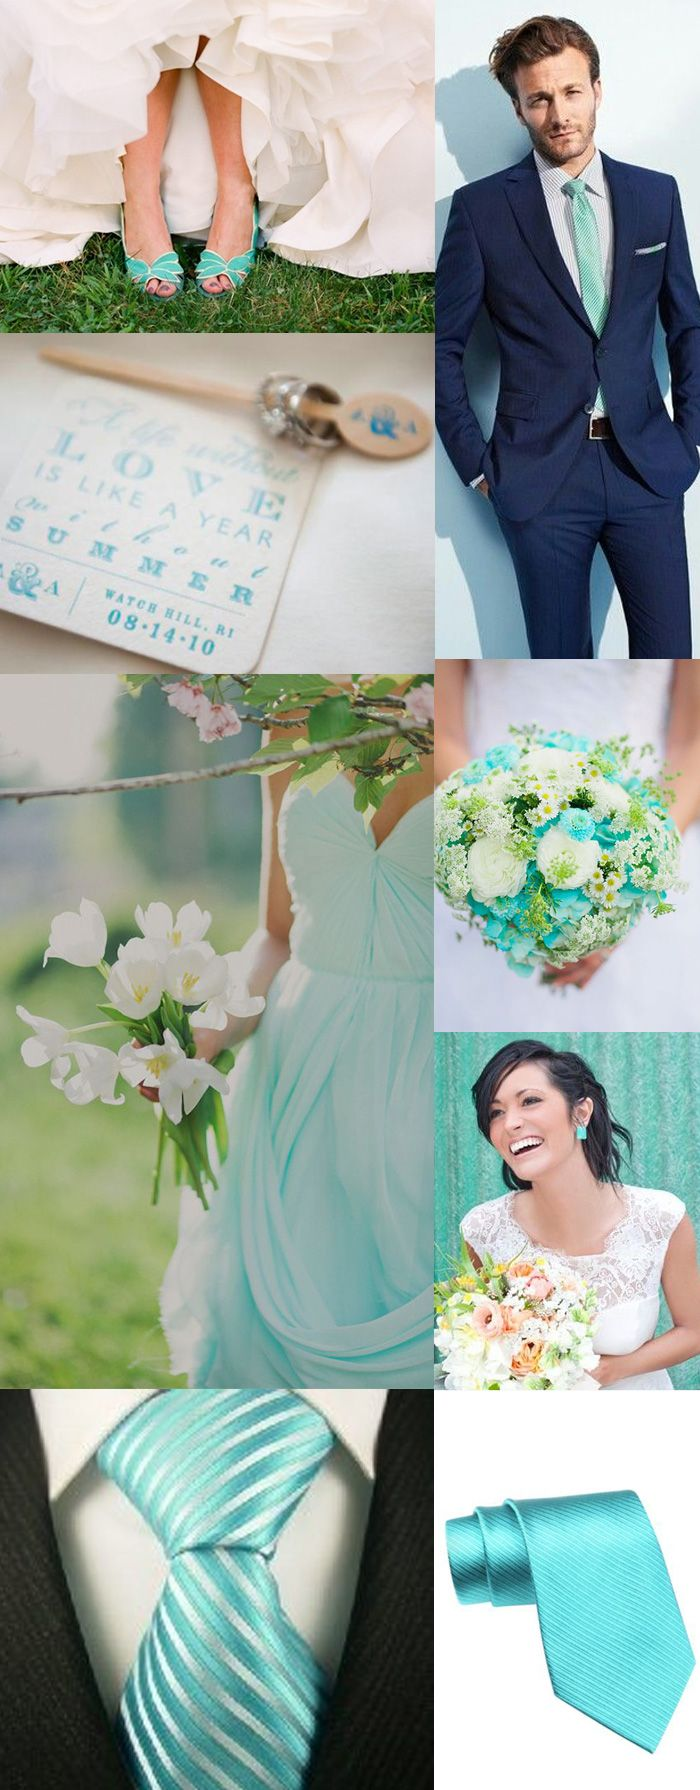 144 best Tiffany Blue Wedding Details images on Pinterest ...